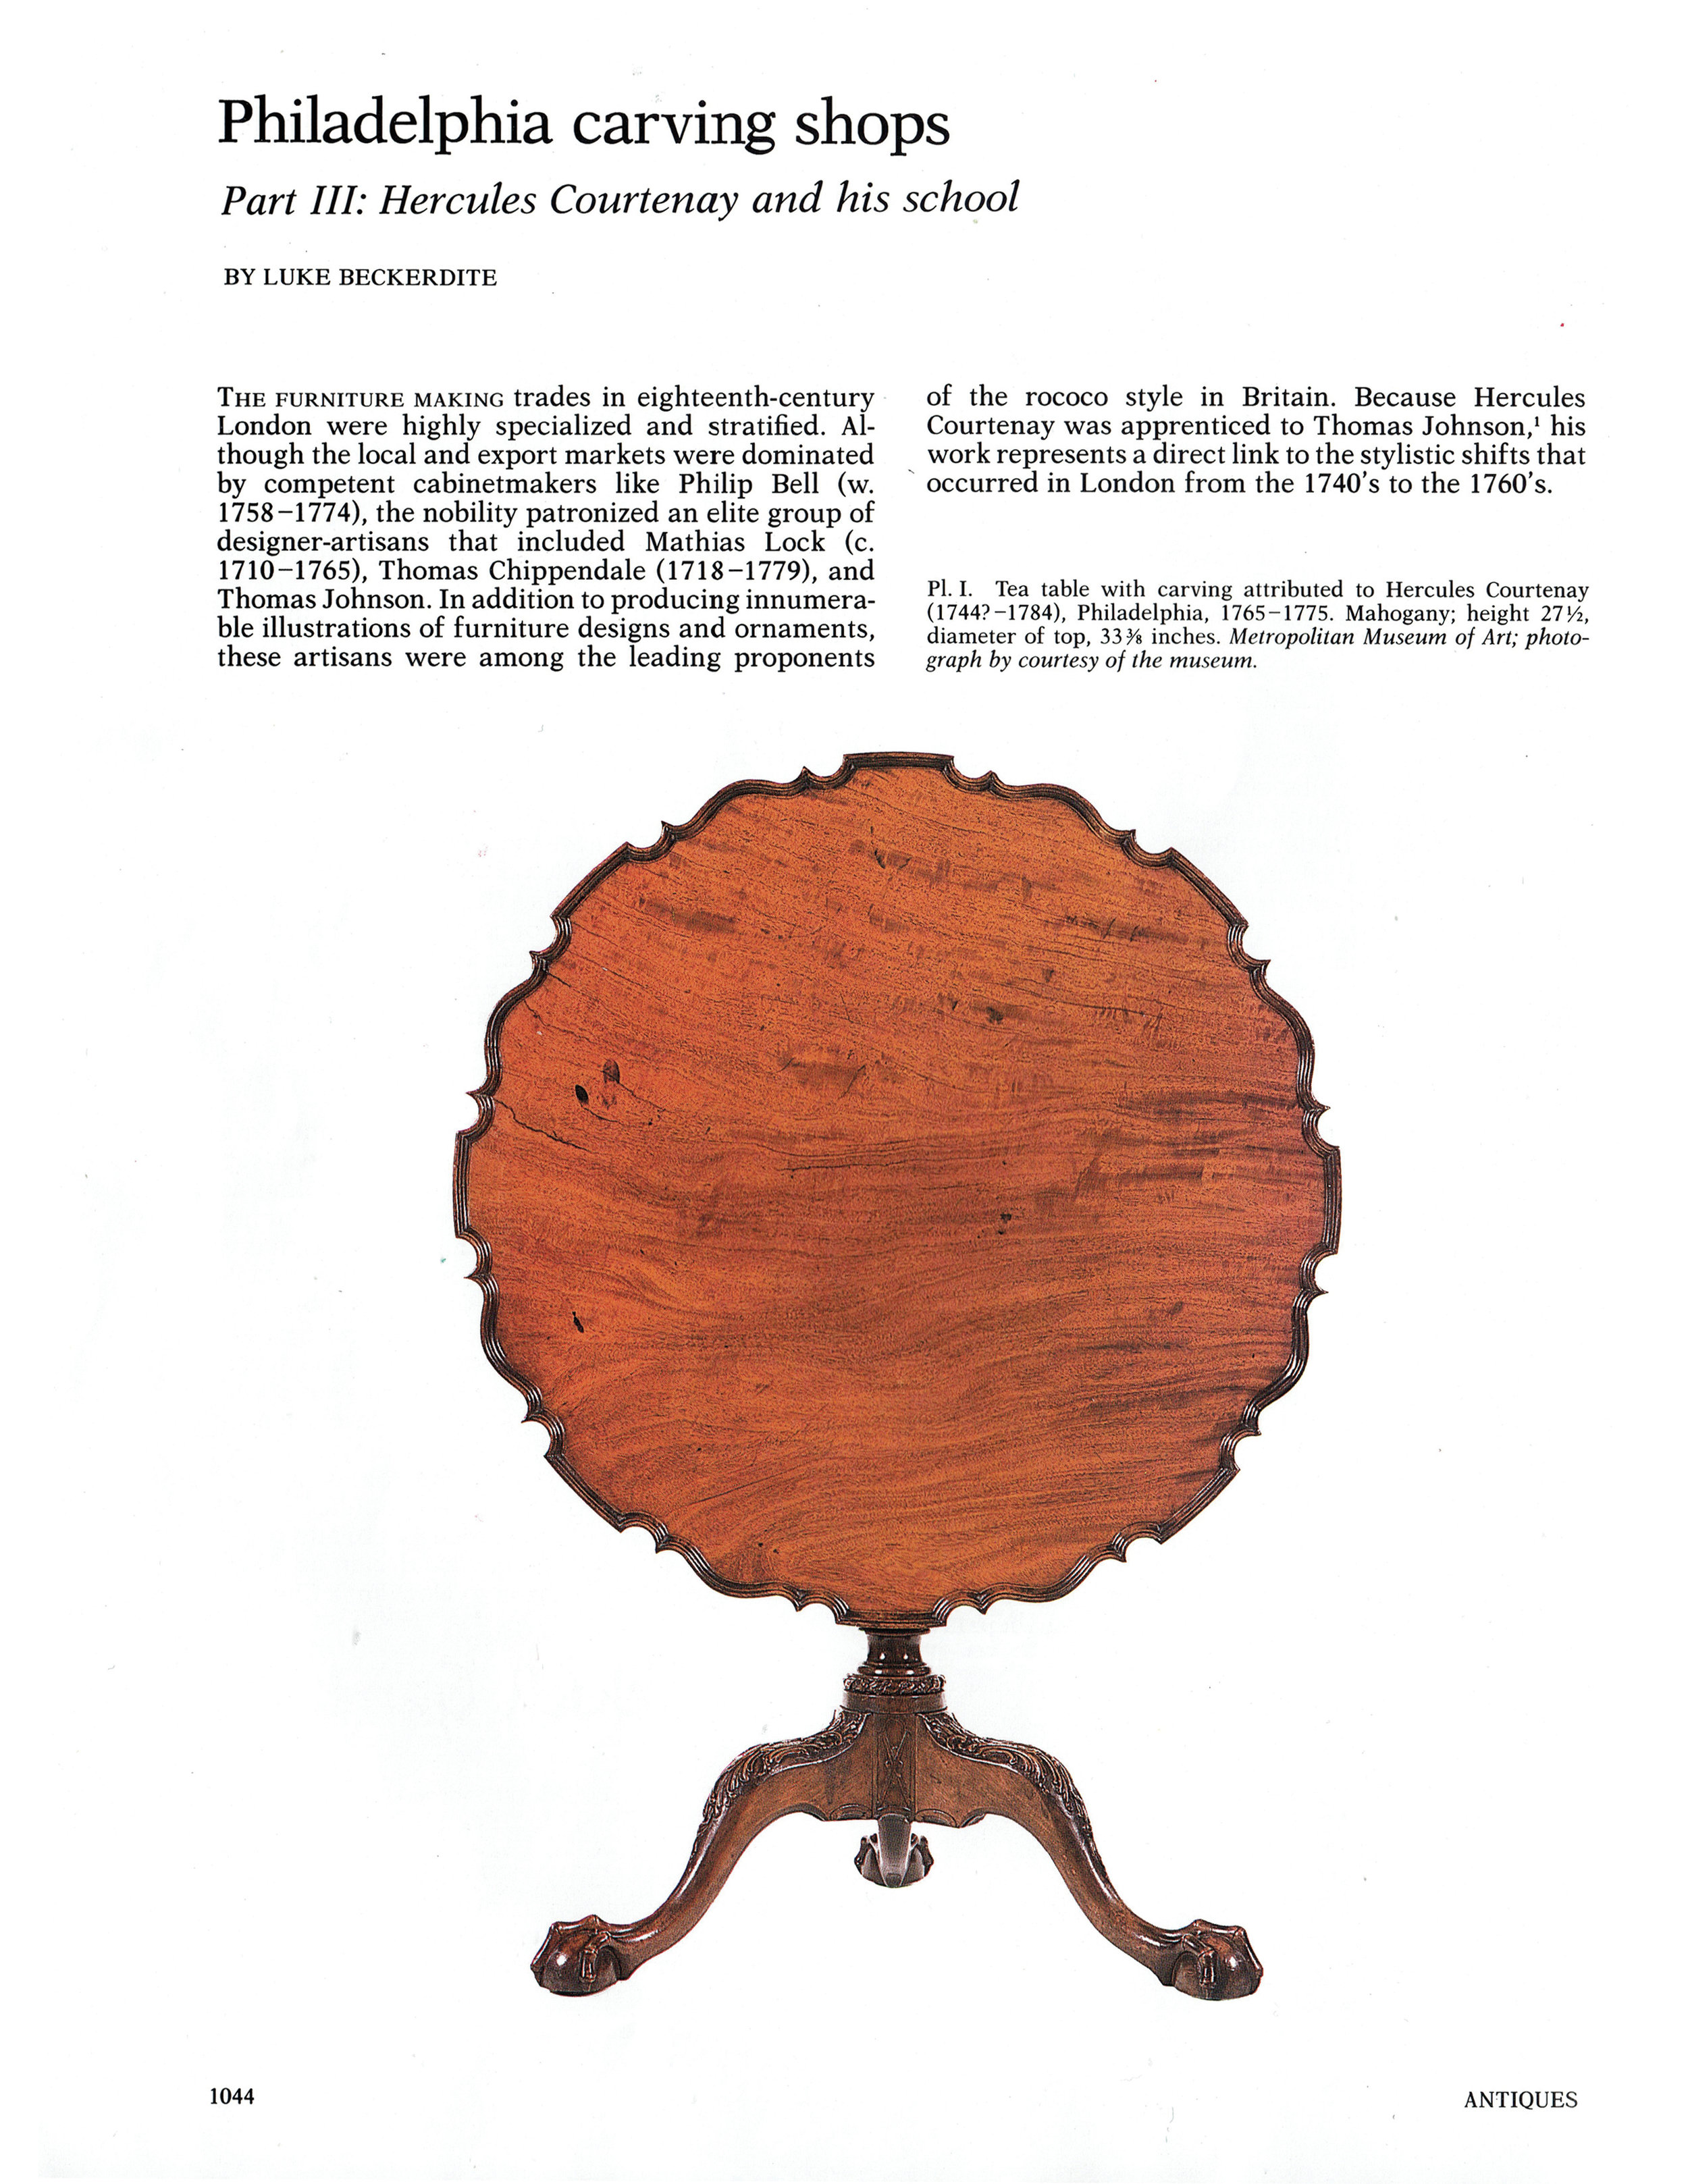 2018.01.16 CPF Antiques Article 02 - Pg1044.jpg